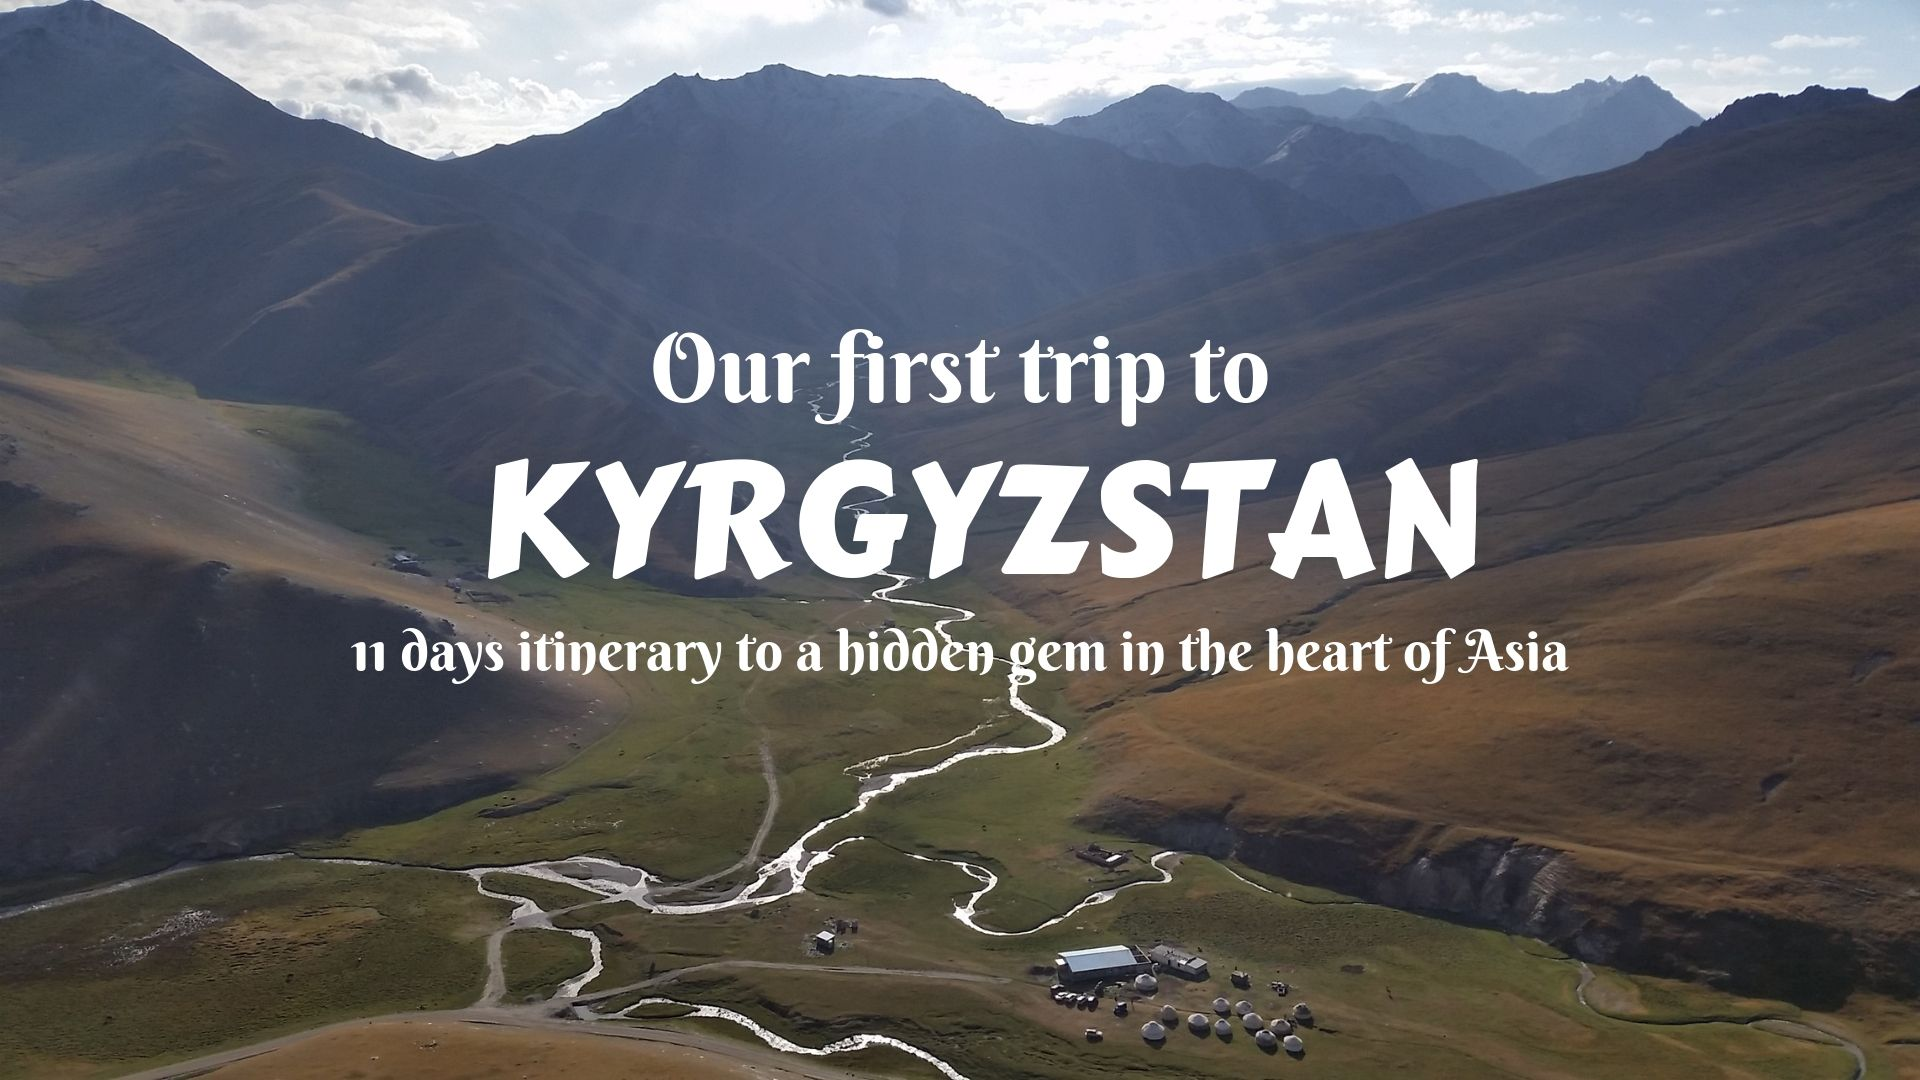 OUR FIRST TRIP TO KYRGYZSTAN- A 11-days itinerary to a hidden gem in the heart of Asia